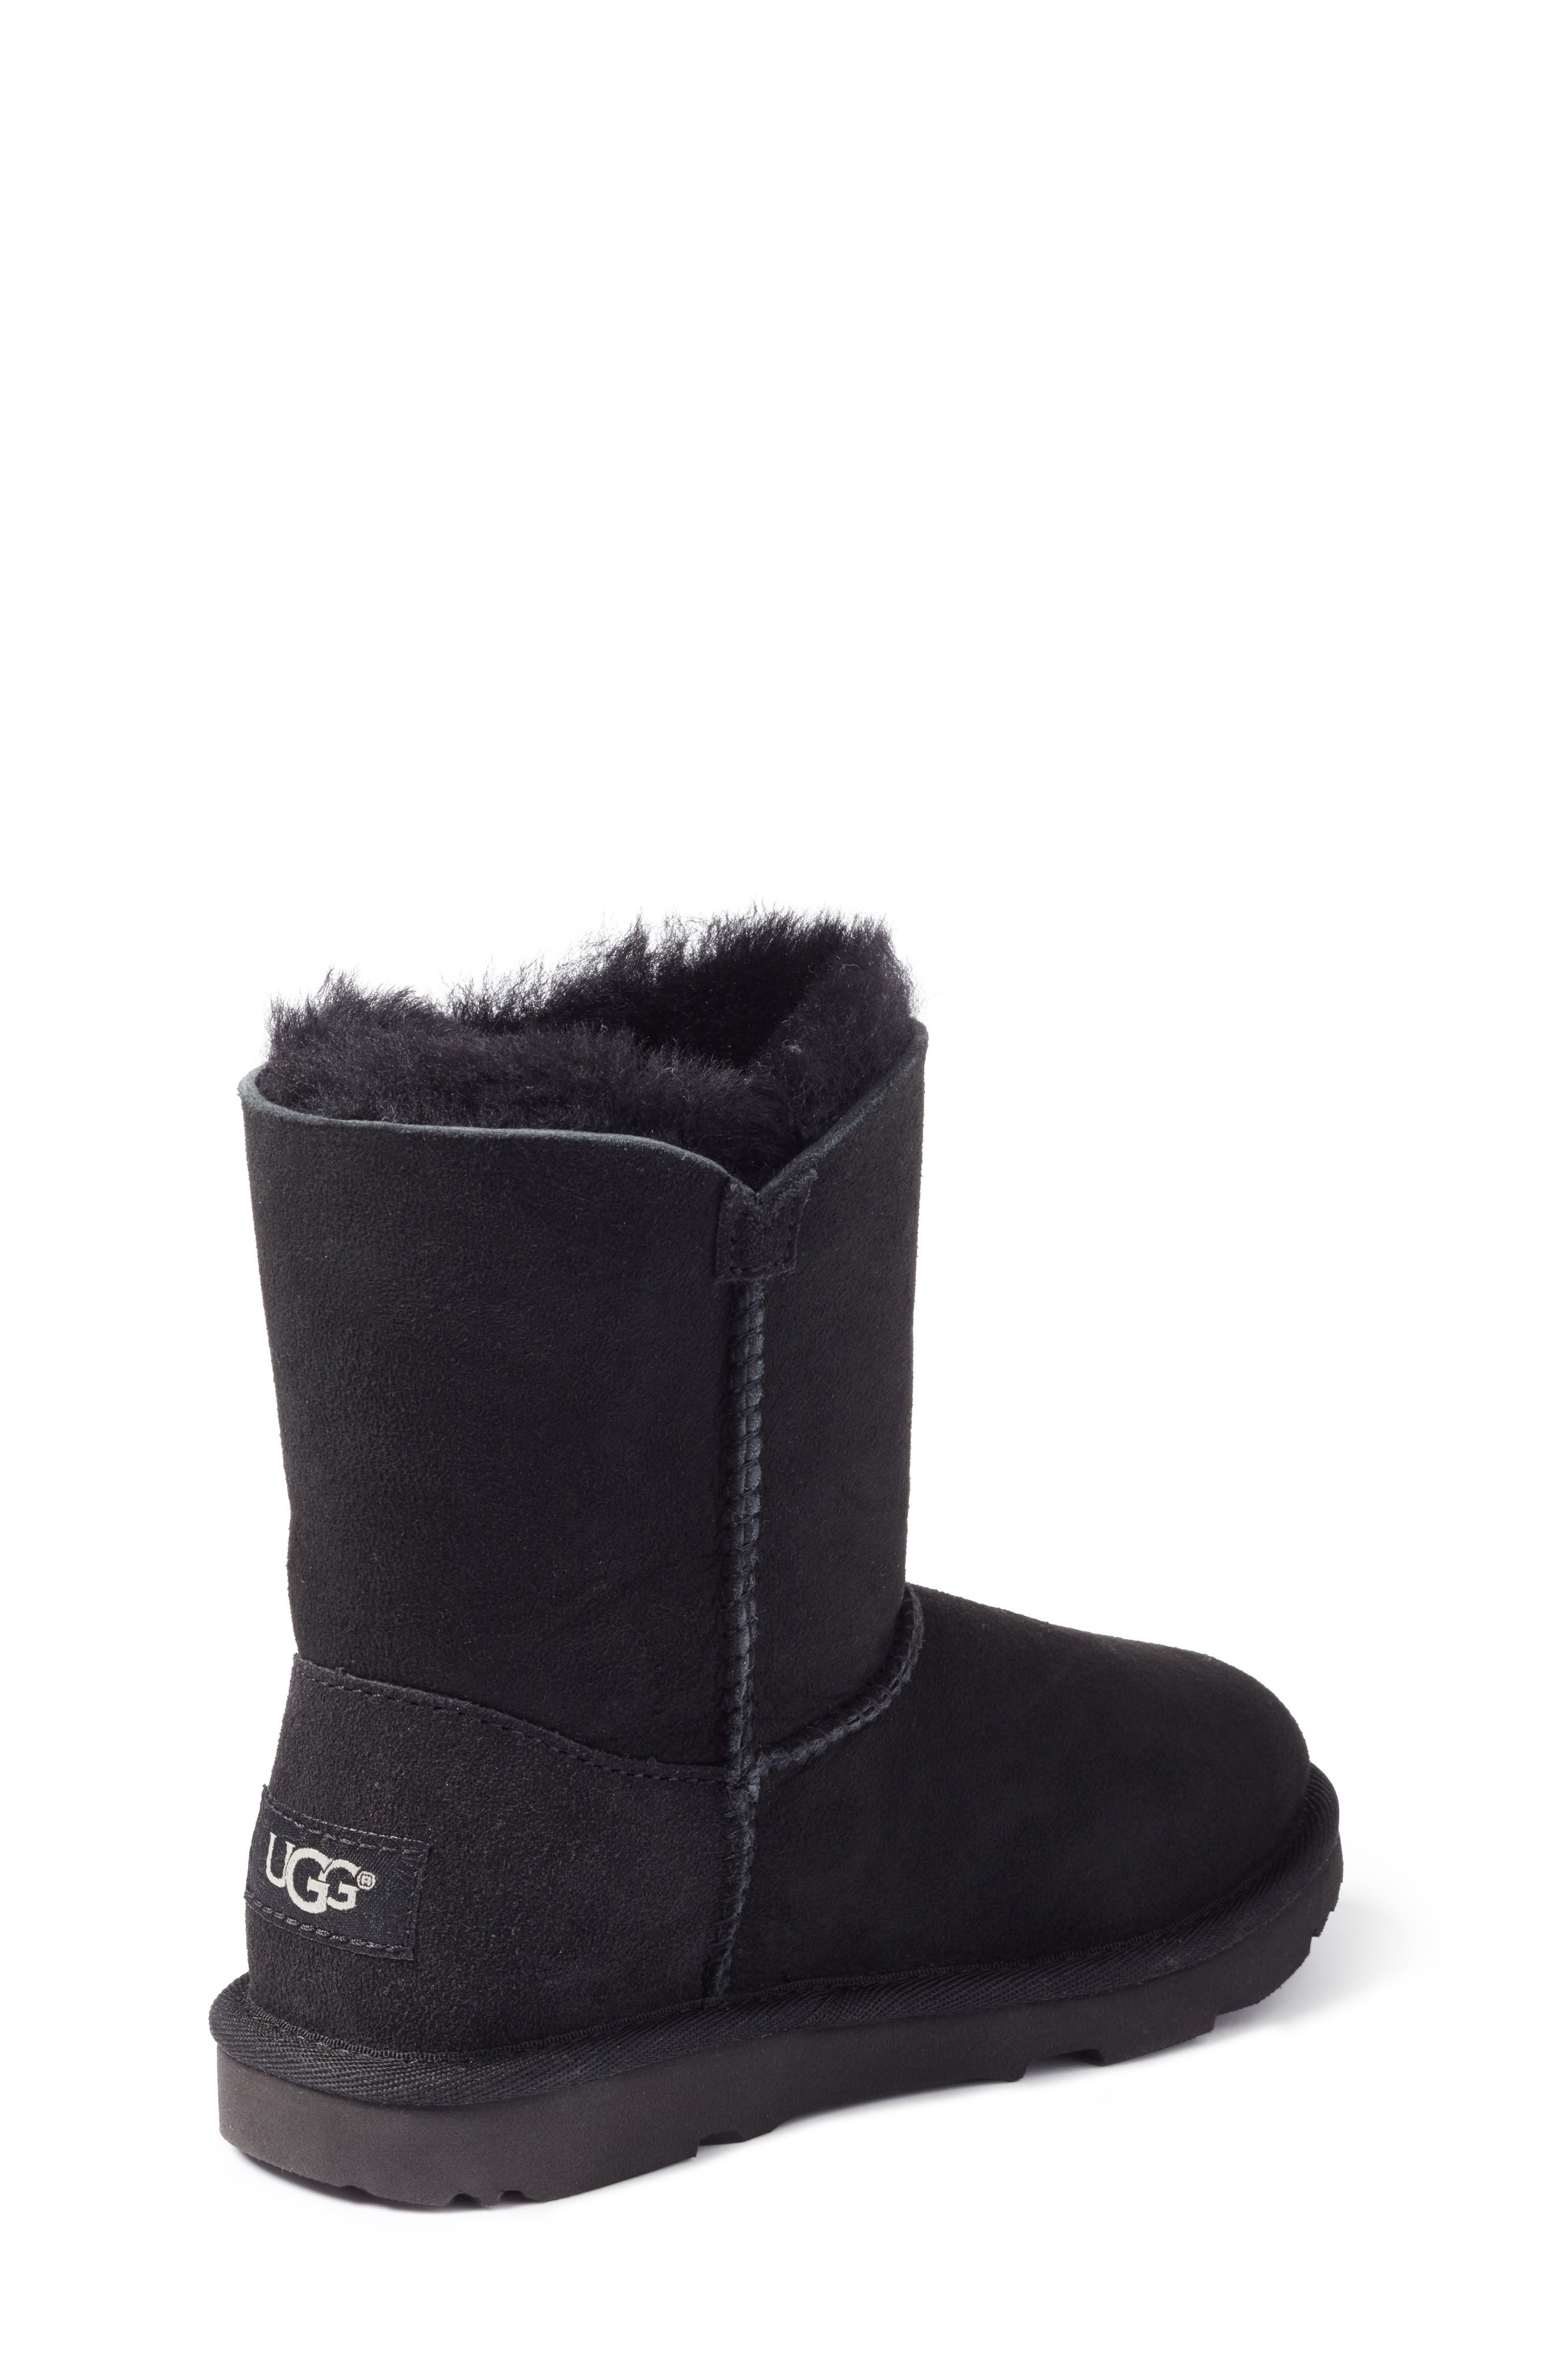 UGG<SUP>®</SUP>, Bailey Button II Water Resistant Genuine Shearling Boot, Alternate thumbnail 2, color, BLACK SUEDE